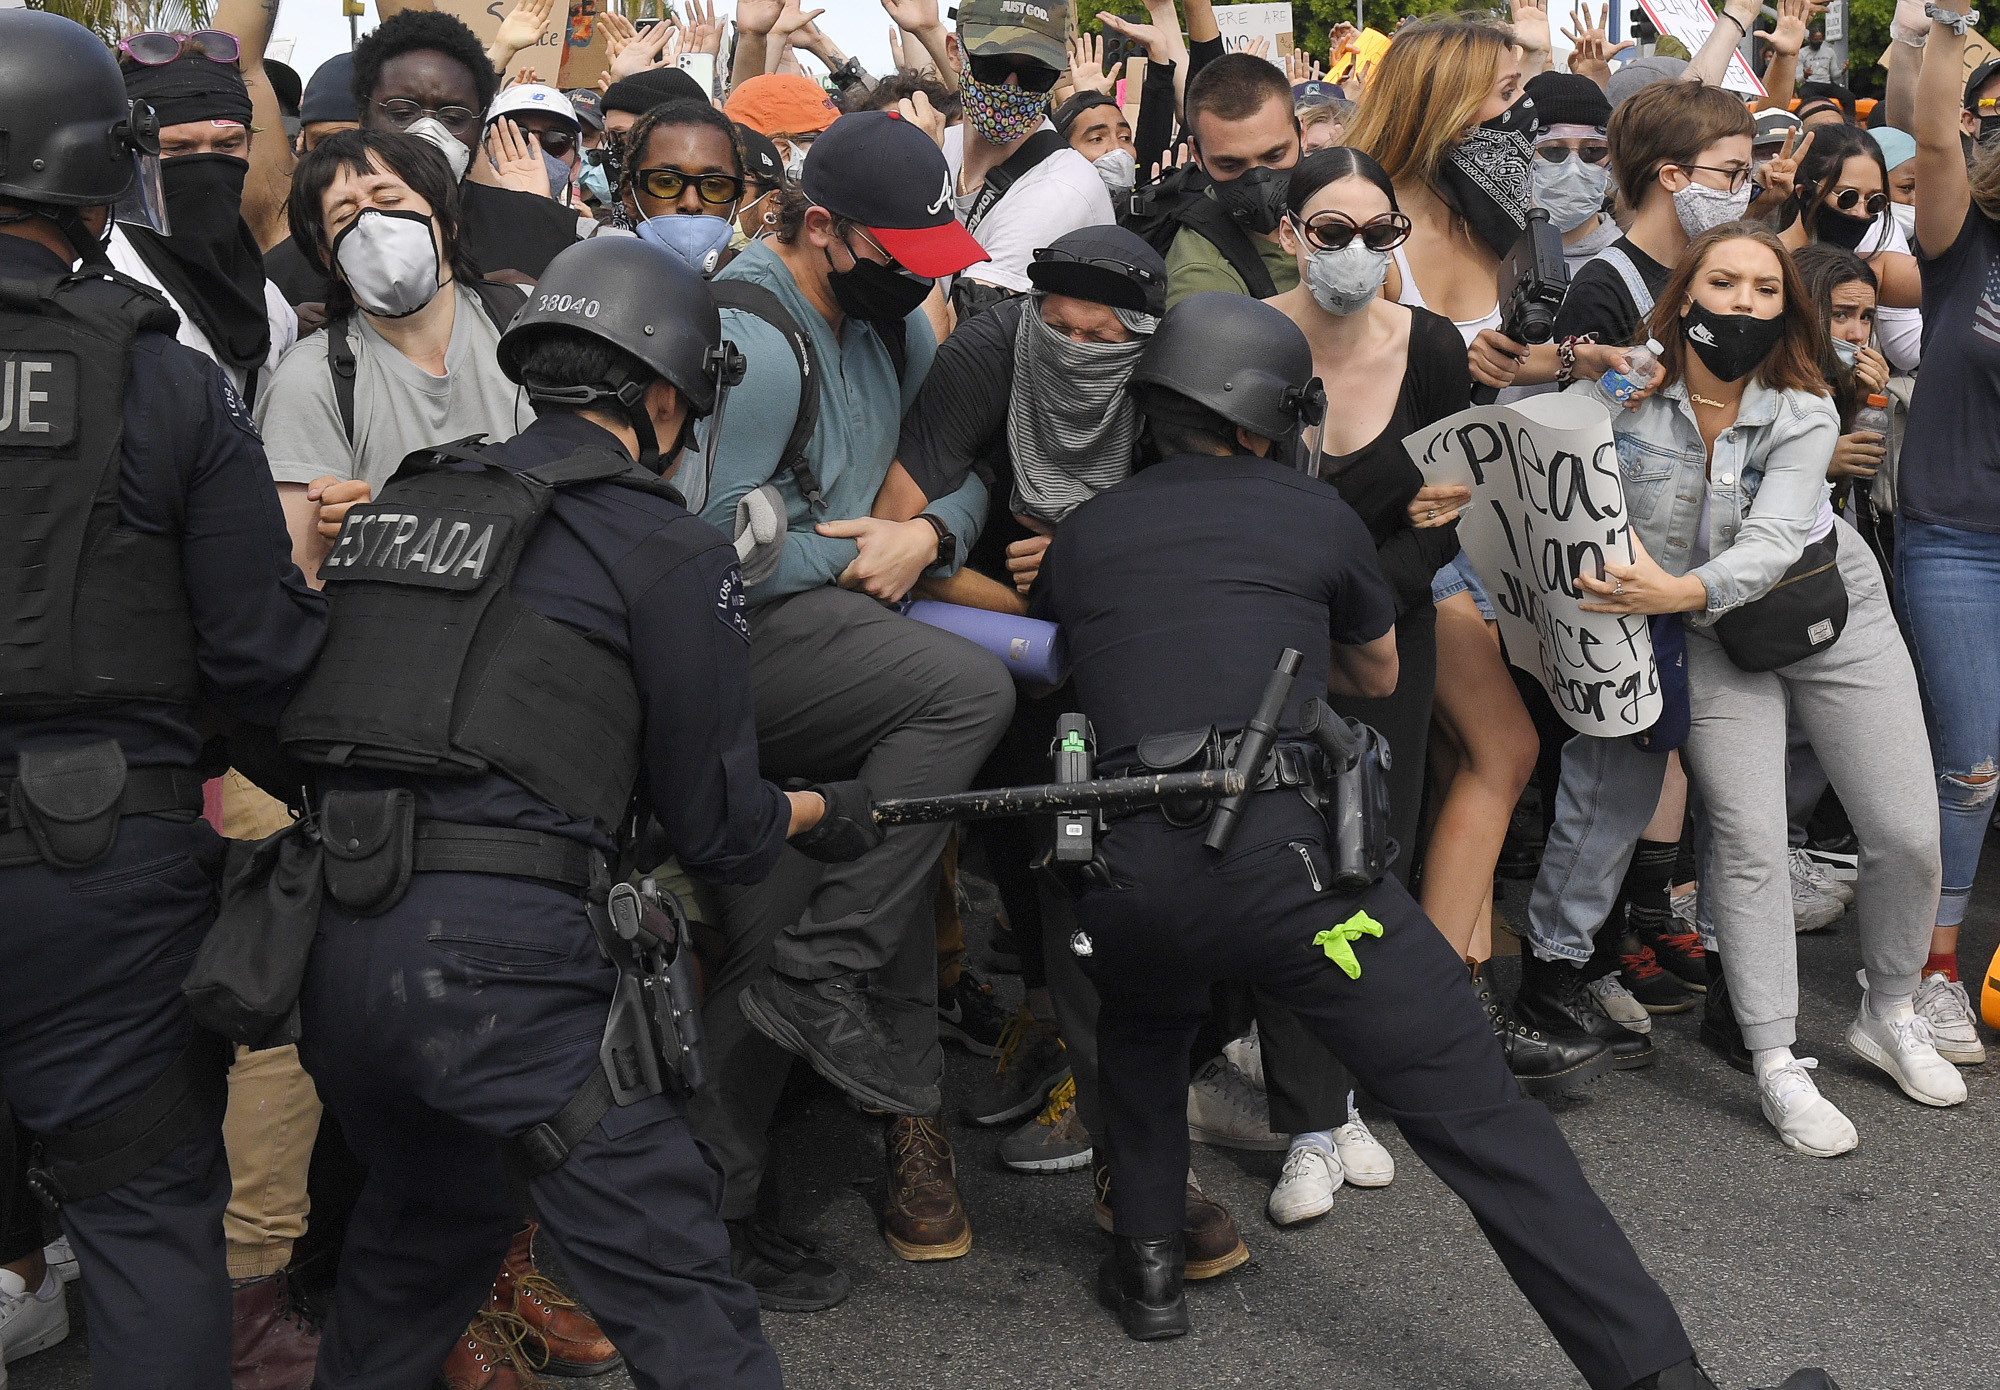 Los Angeles police officers strike demonstrators as they try to push them back during a protest over the death of George Floyd, May 30, 2020, in Los Angeles. Photo by Mark J. Terrill, AP Photo